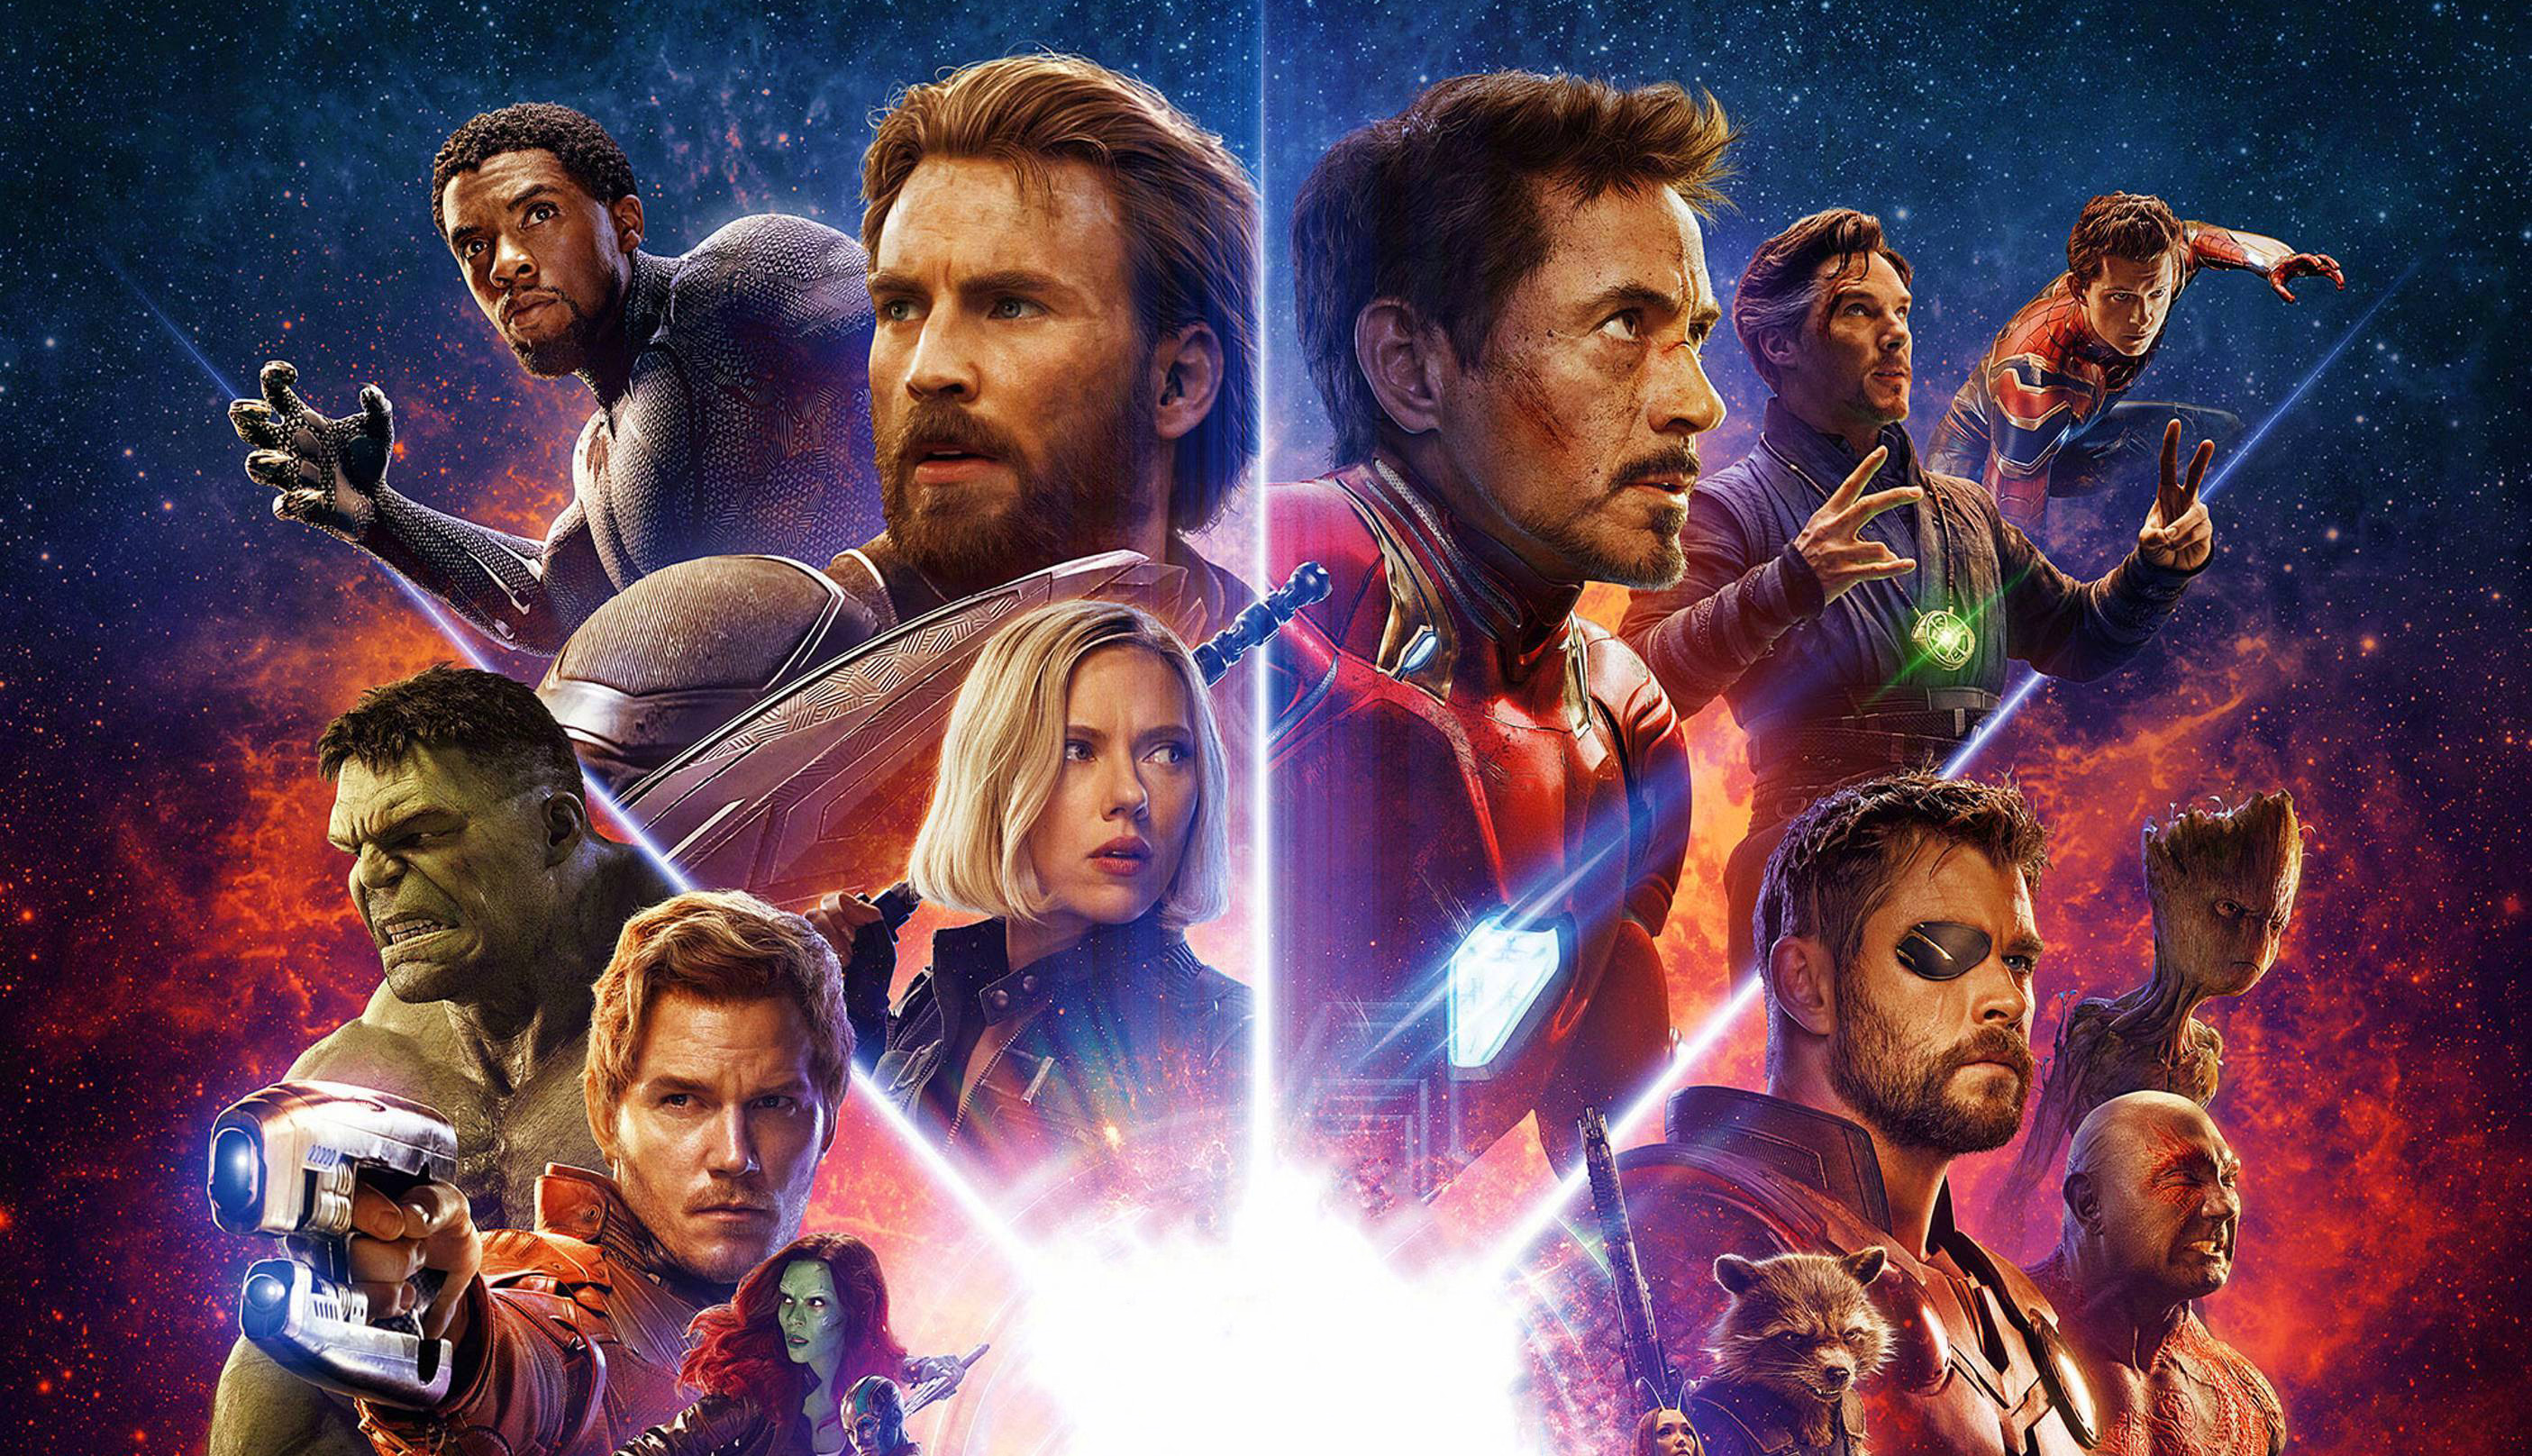 avengers infinity war imax poster, hd movies, 4k wallpapers, images